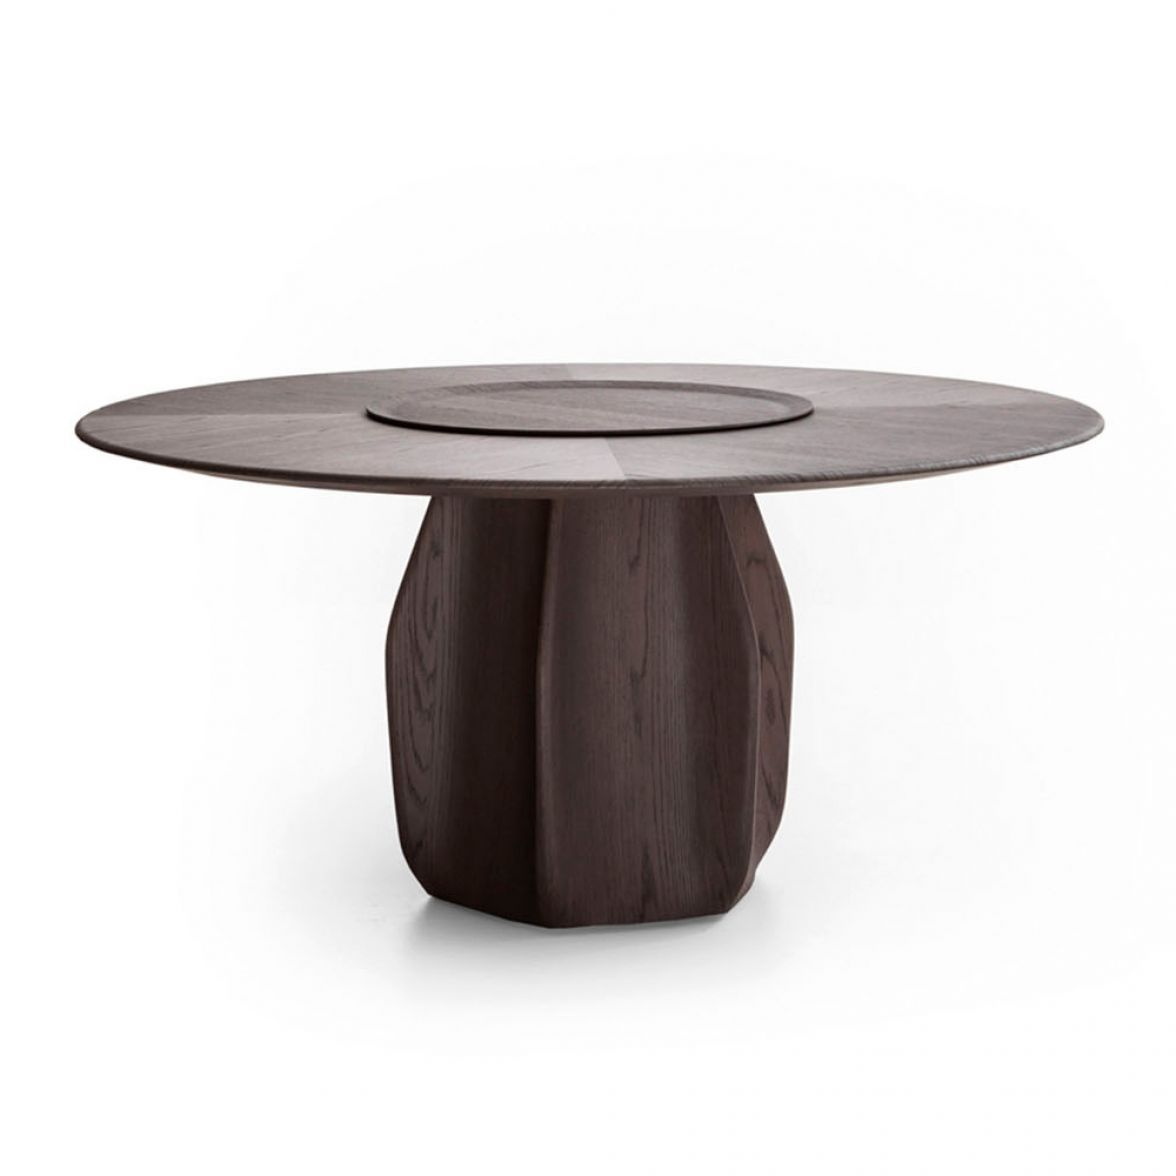 ASTERIAS table